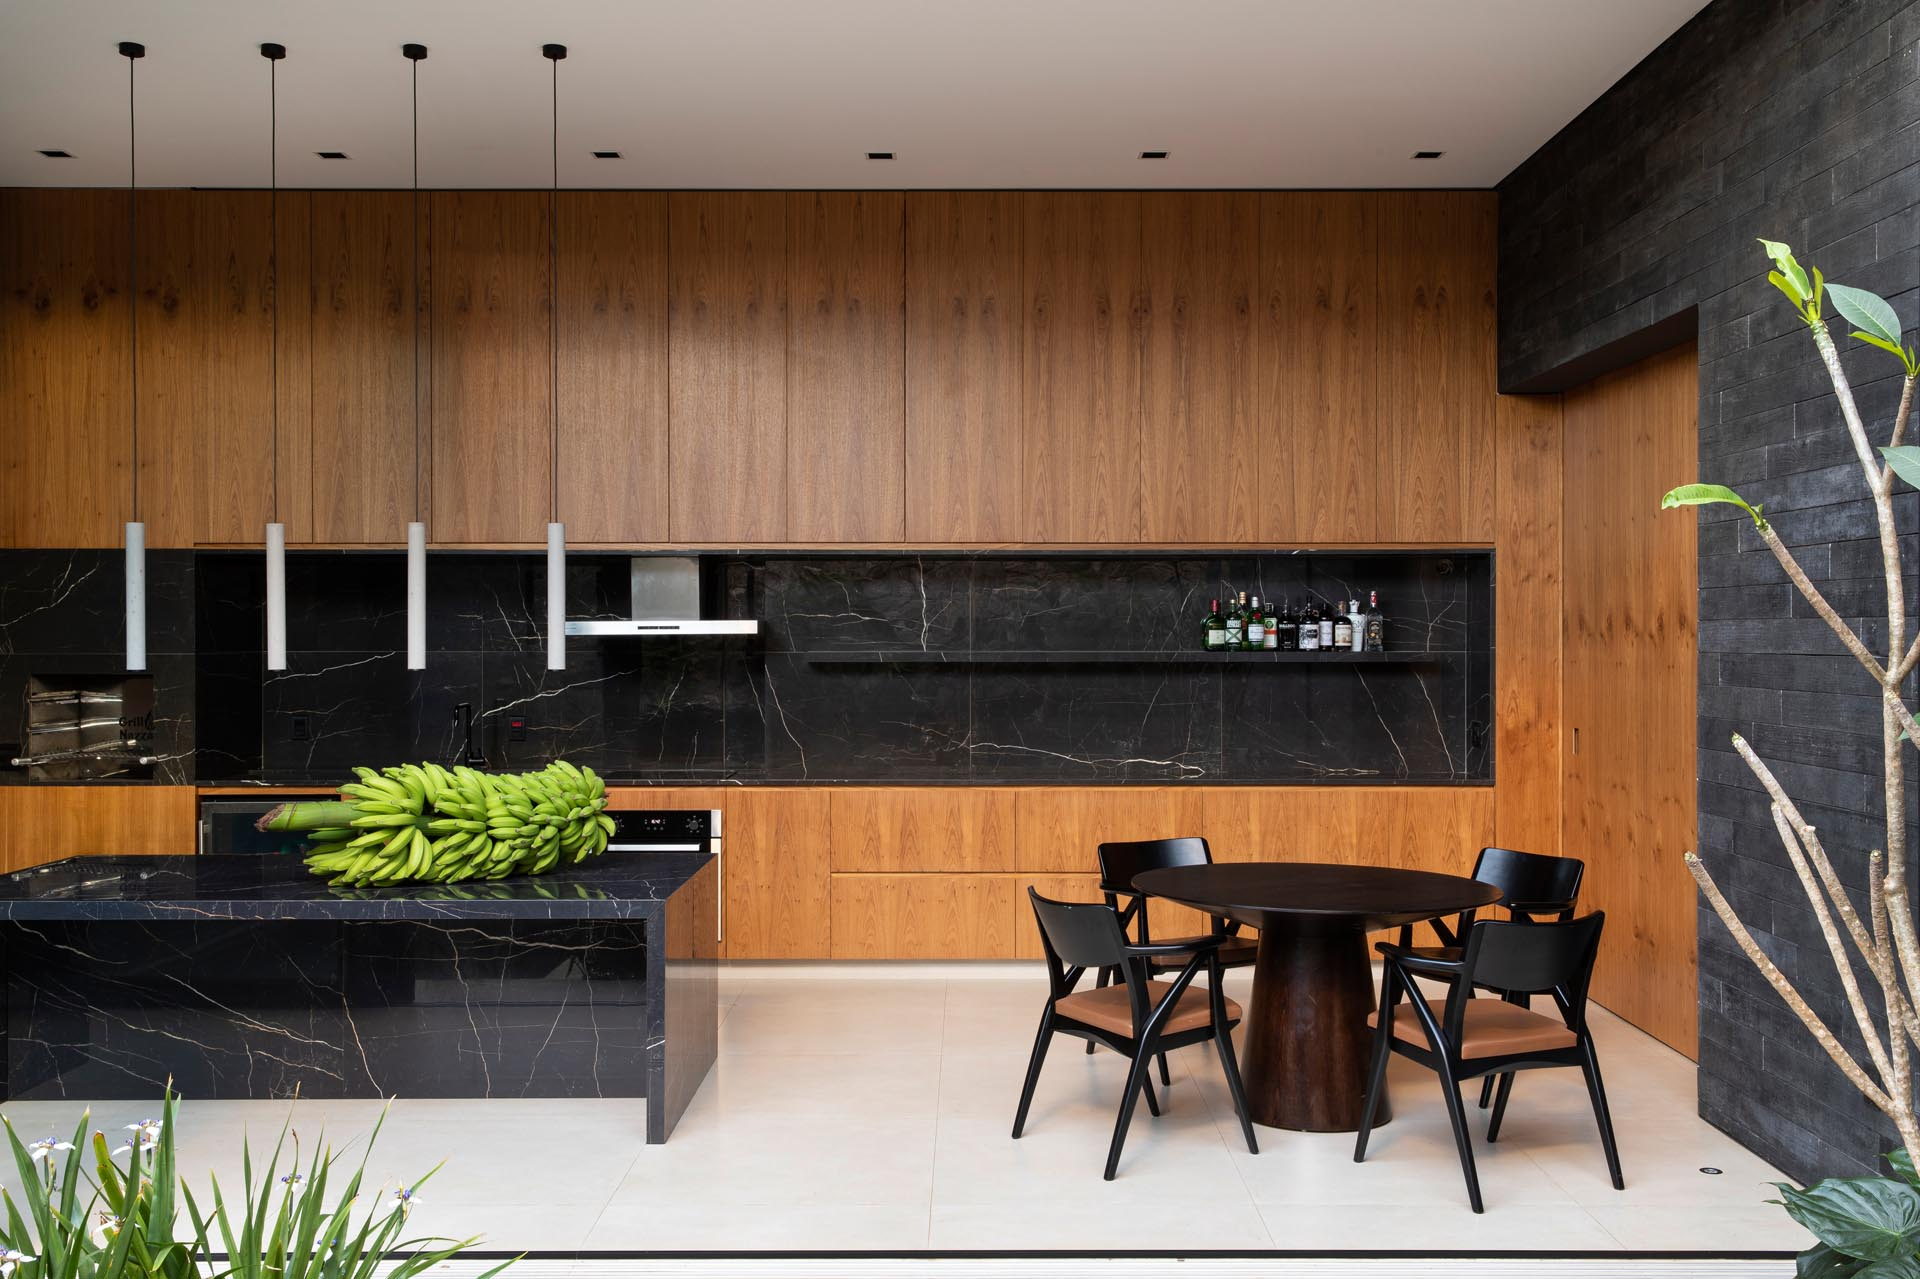 In this modern kitchen, the wood cabinets are contrasted by black stone that used for the backsplash, floating shelf, and island.